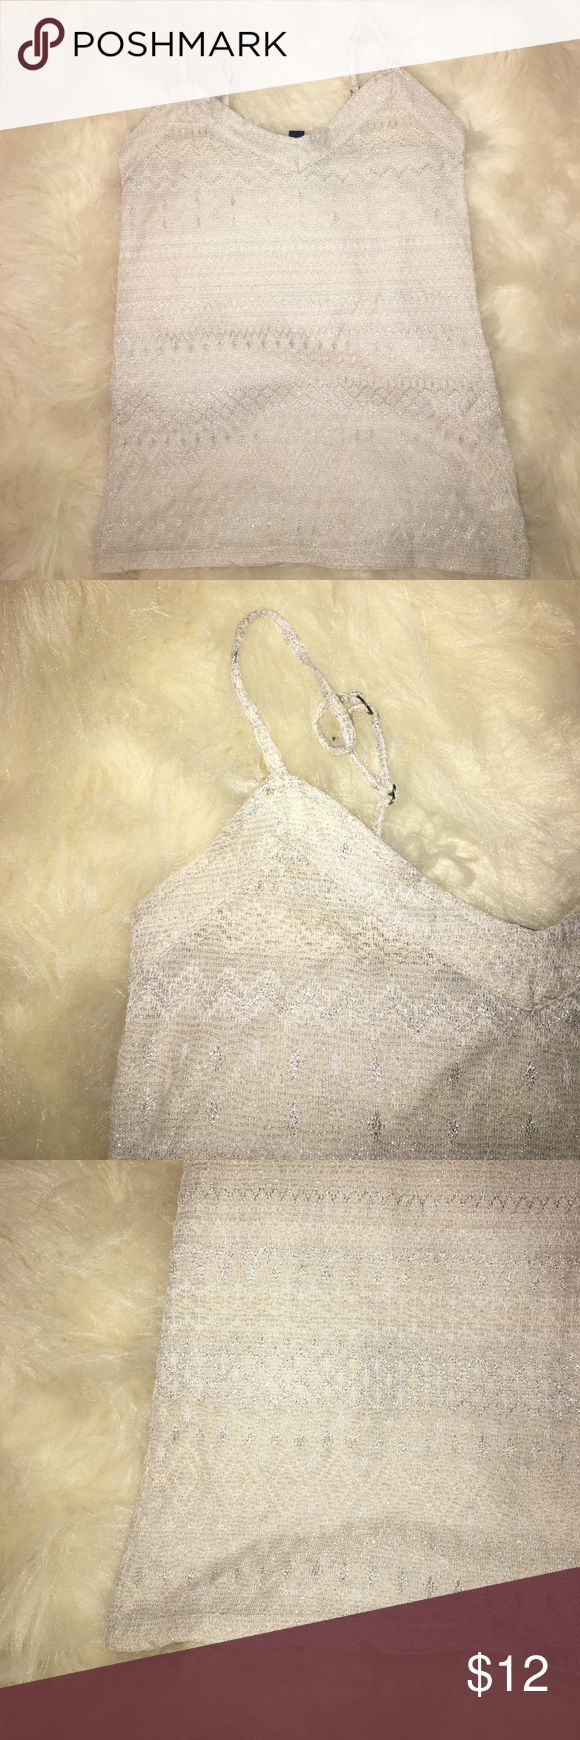 American Eagle nude metallic cami adjustable strap Super shiny nude cami perfect for the holiday season. It is sheer ! American Eagle Outfitters Tops Camisoles